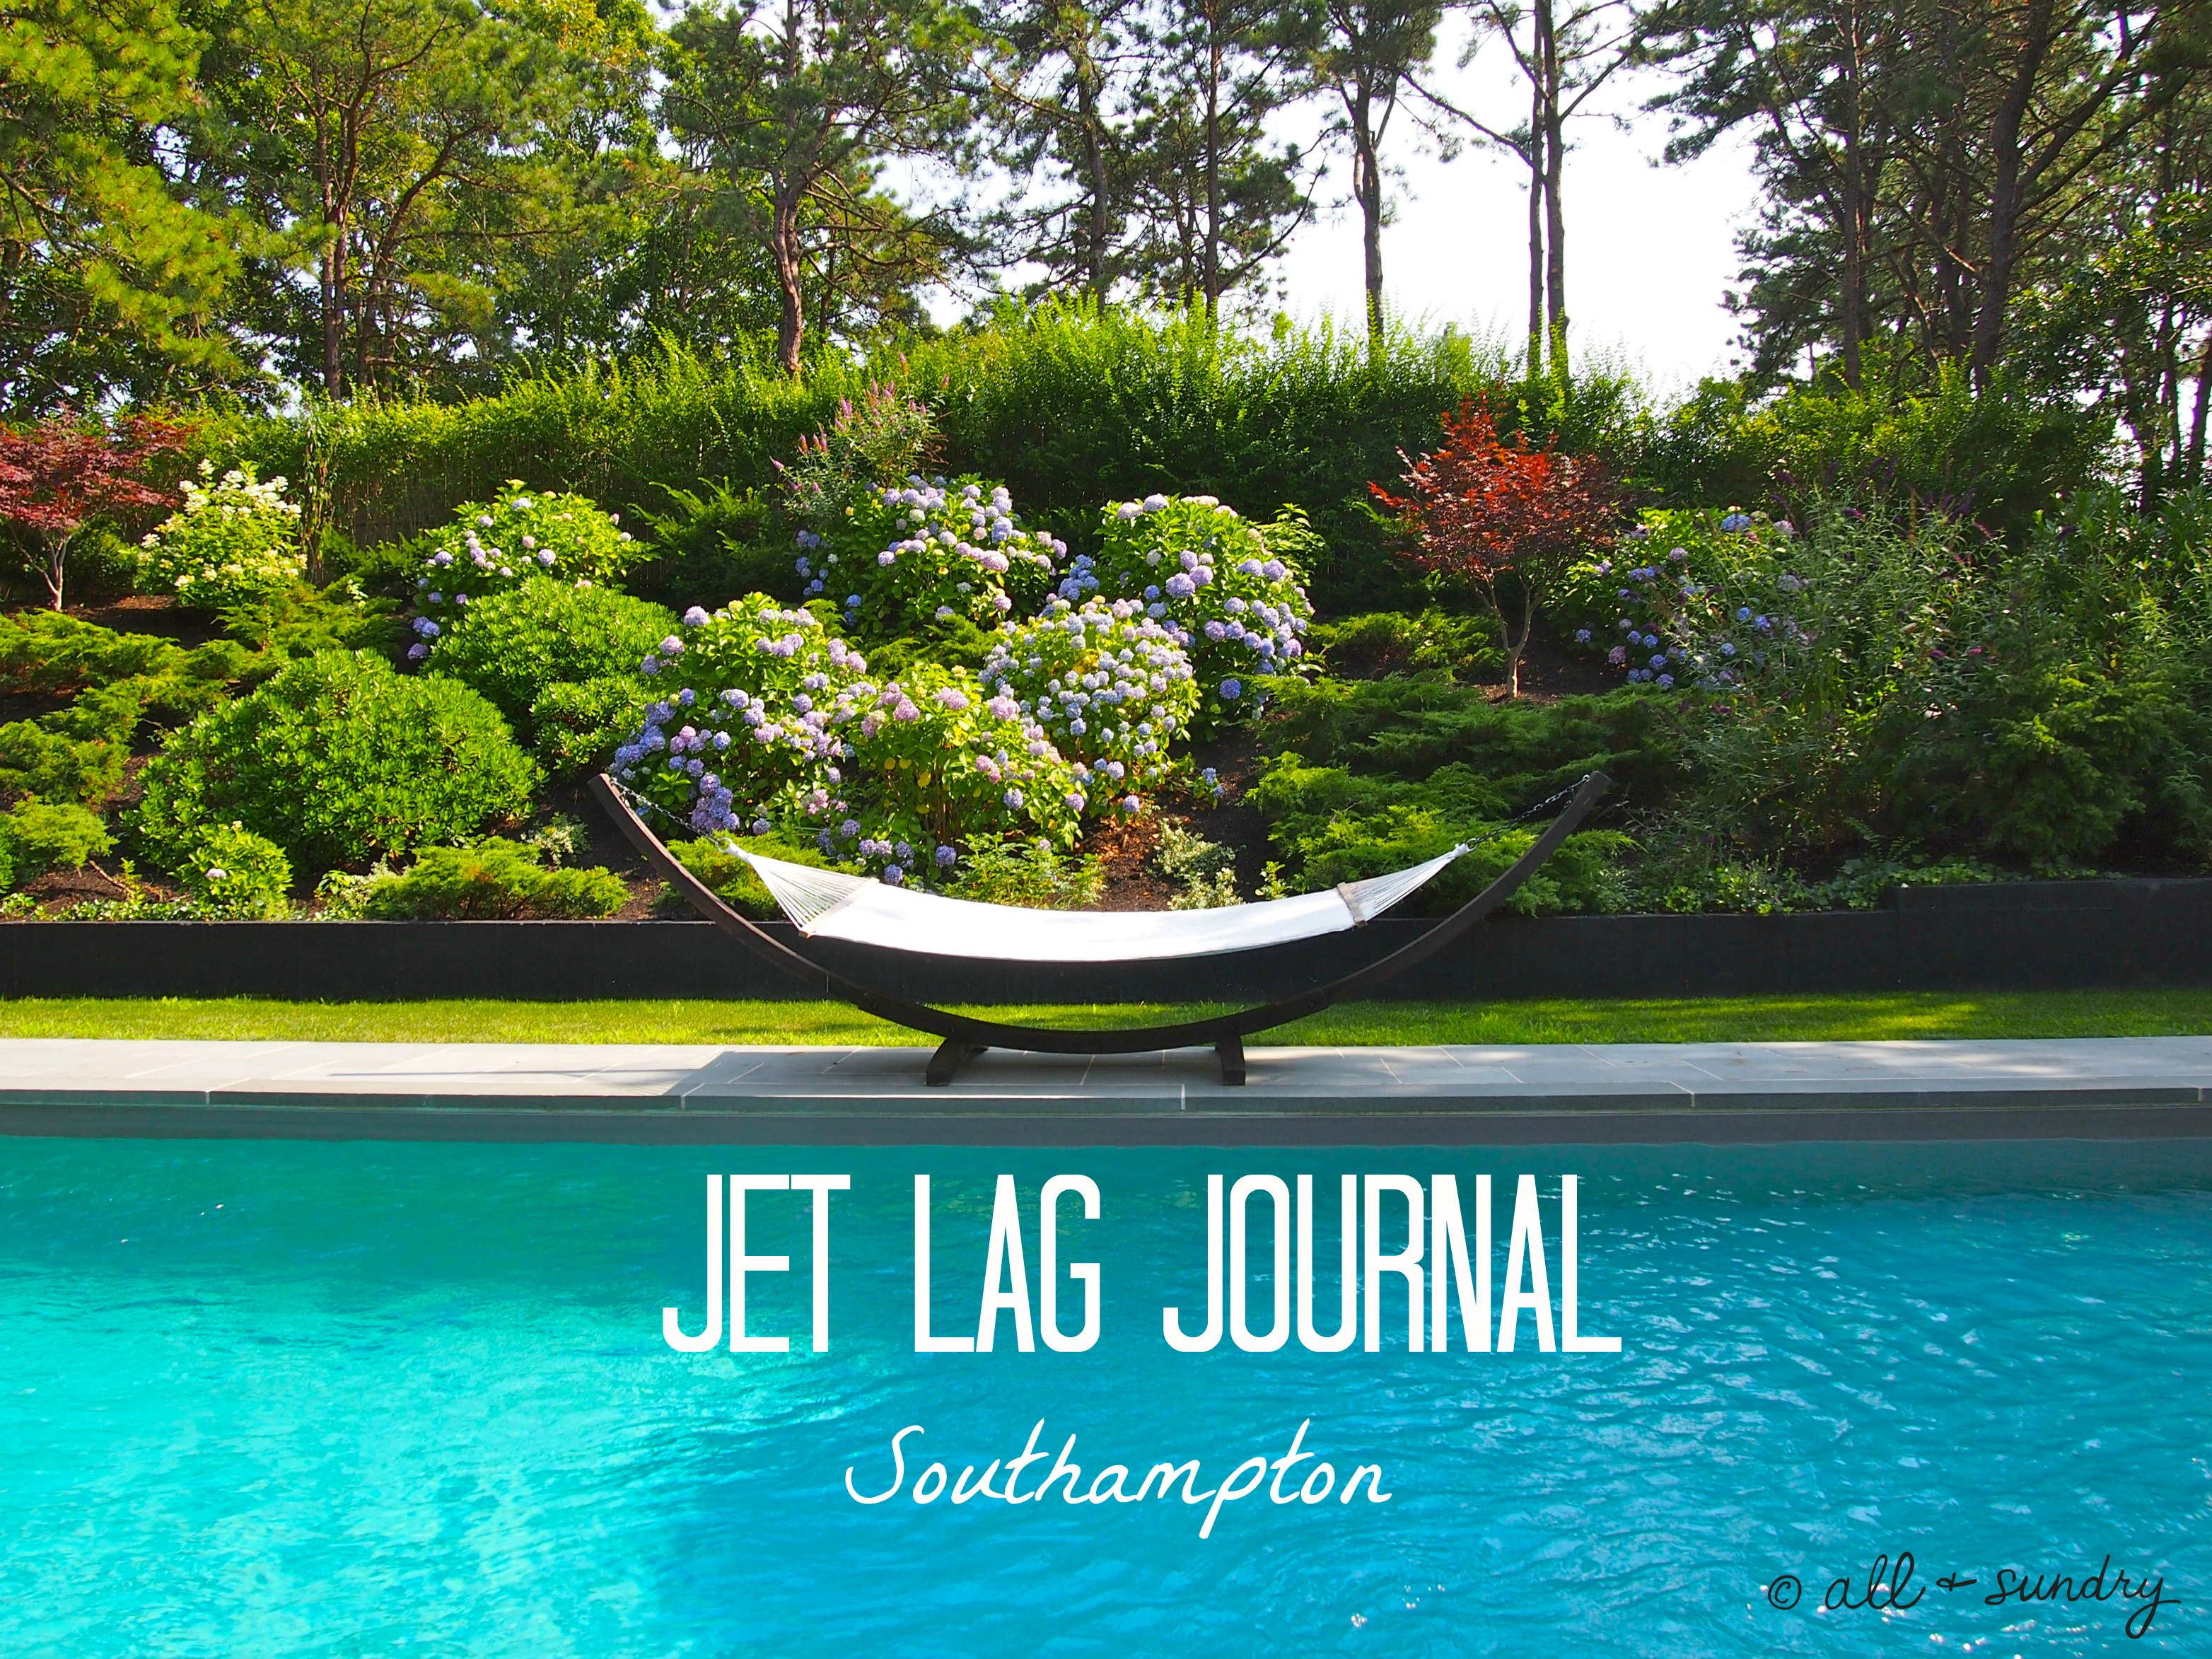 Southampton Jet Lag Journal Hammock Header